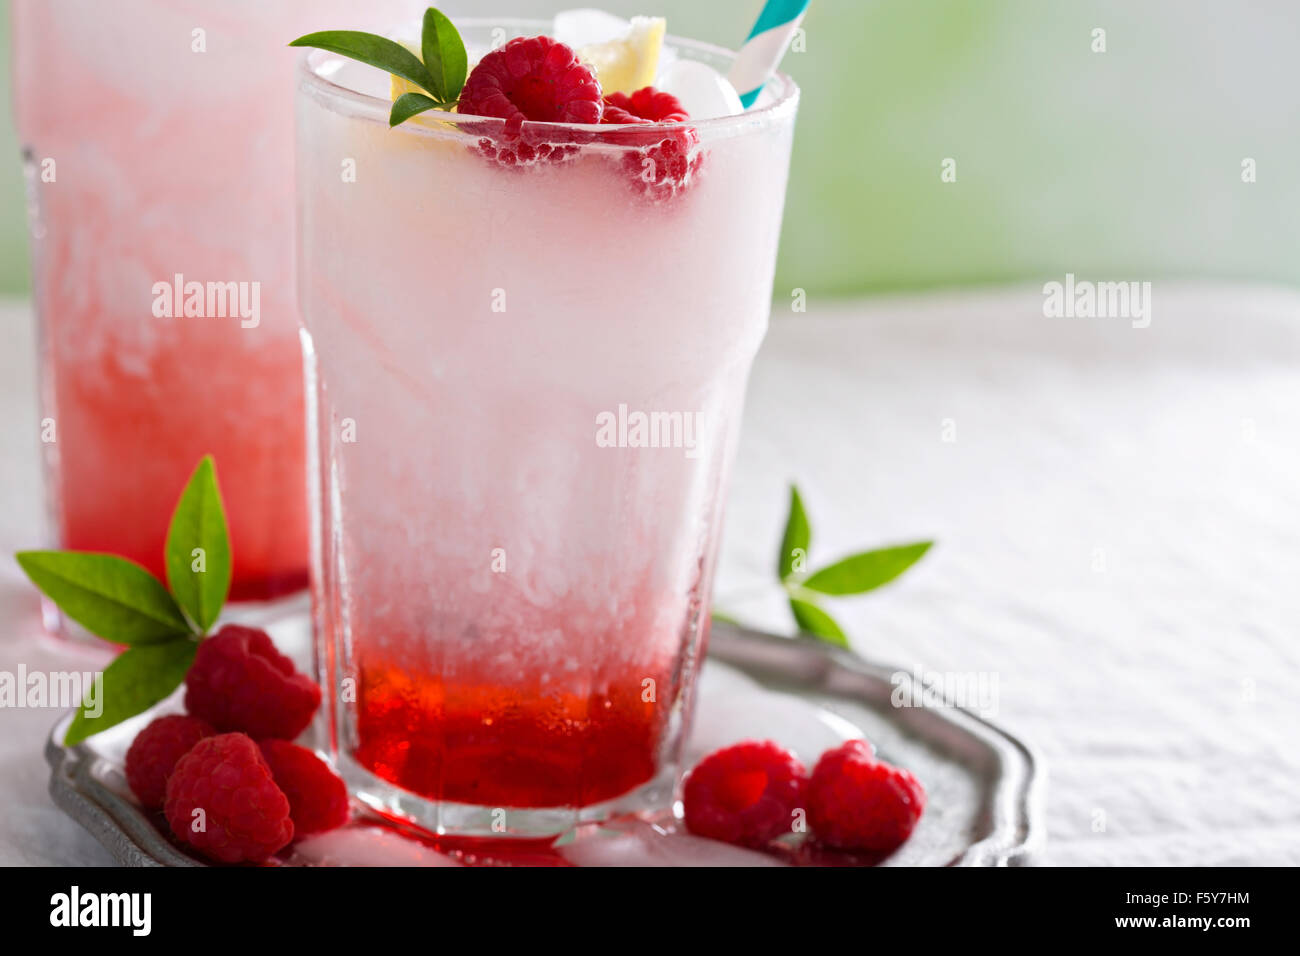 Italian soda drink with berry syrup and coconut milk - Stock Image